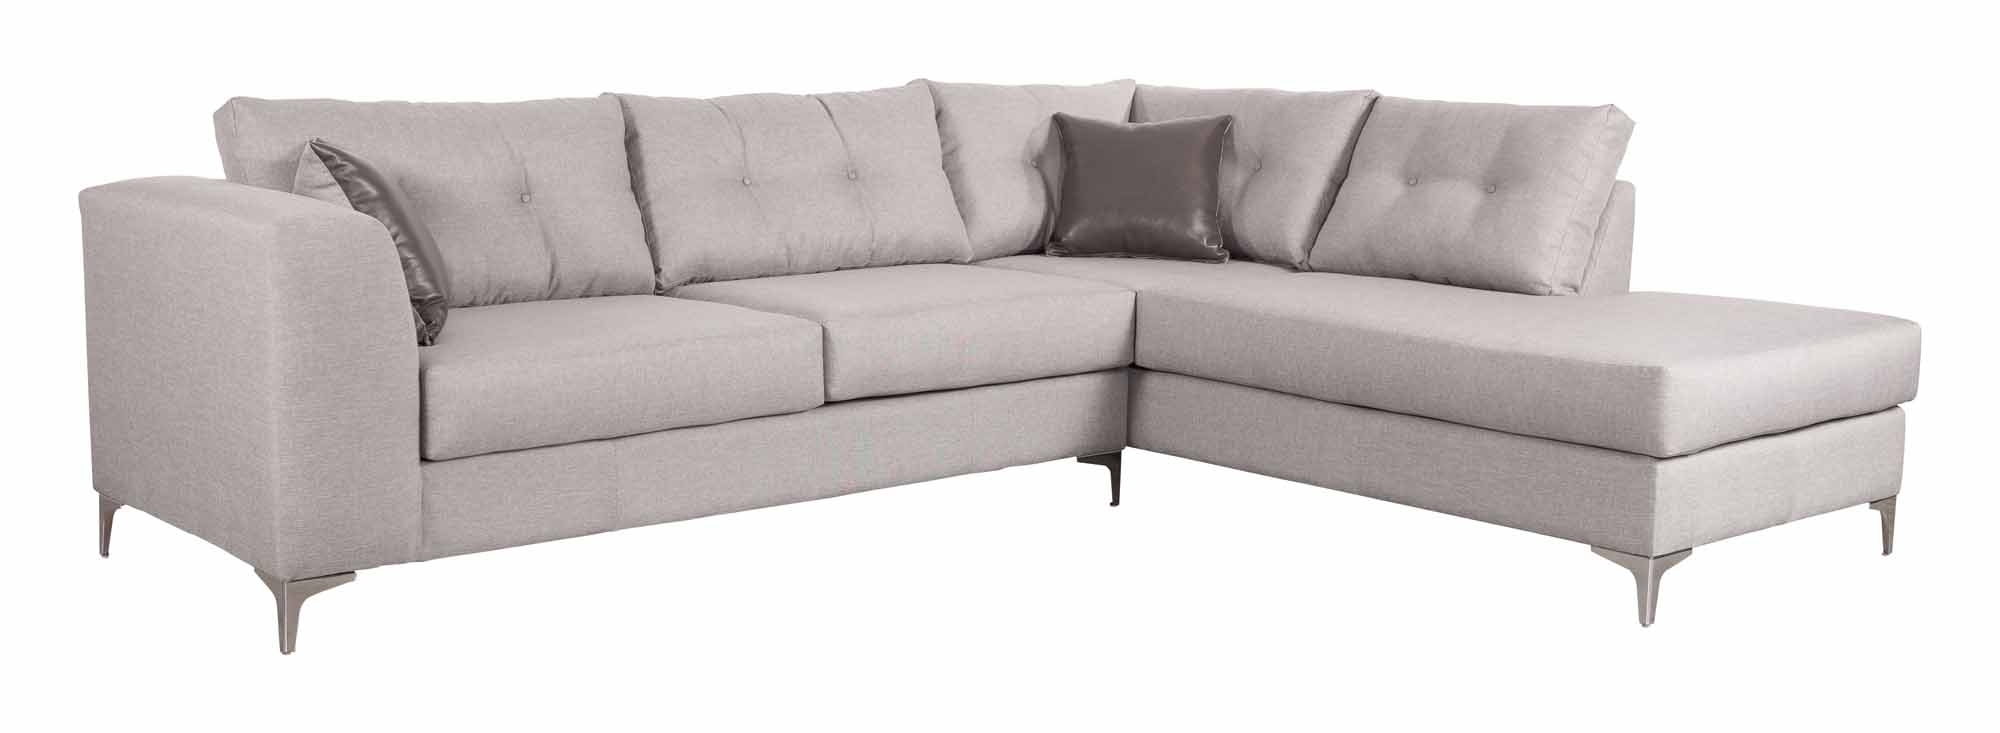 Memphis Sectional Rhf Smokezuo Modern Intended For Memphis Sectional Sofas (View 4 of 10)